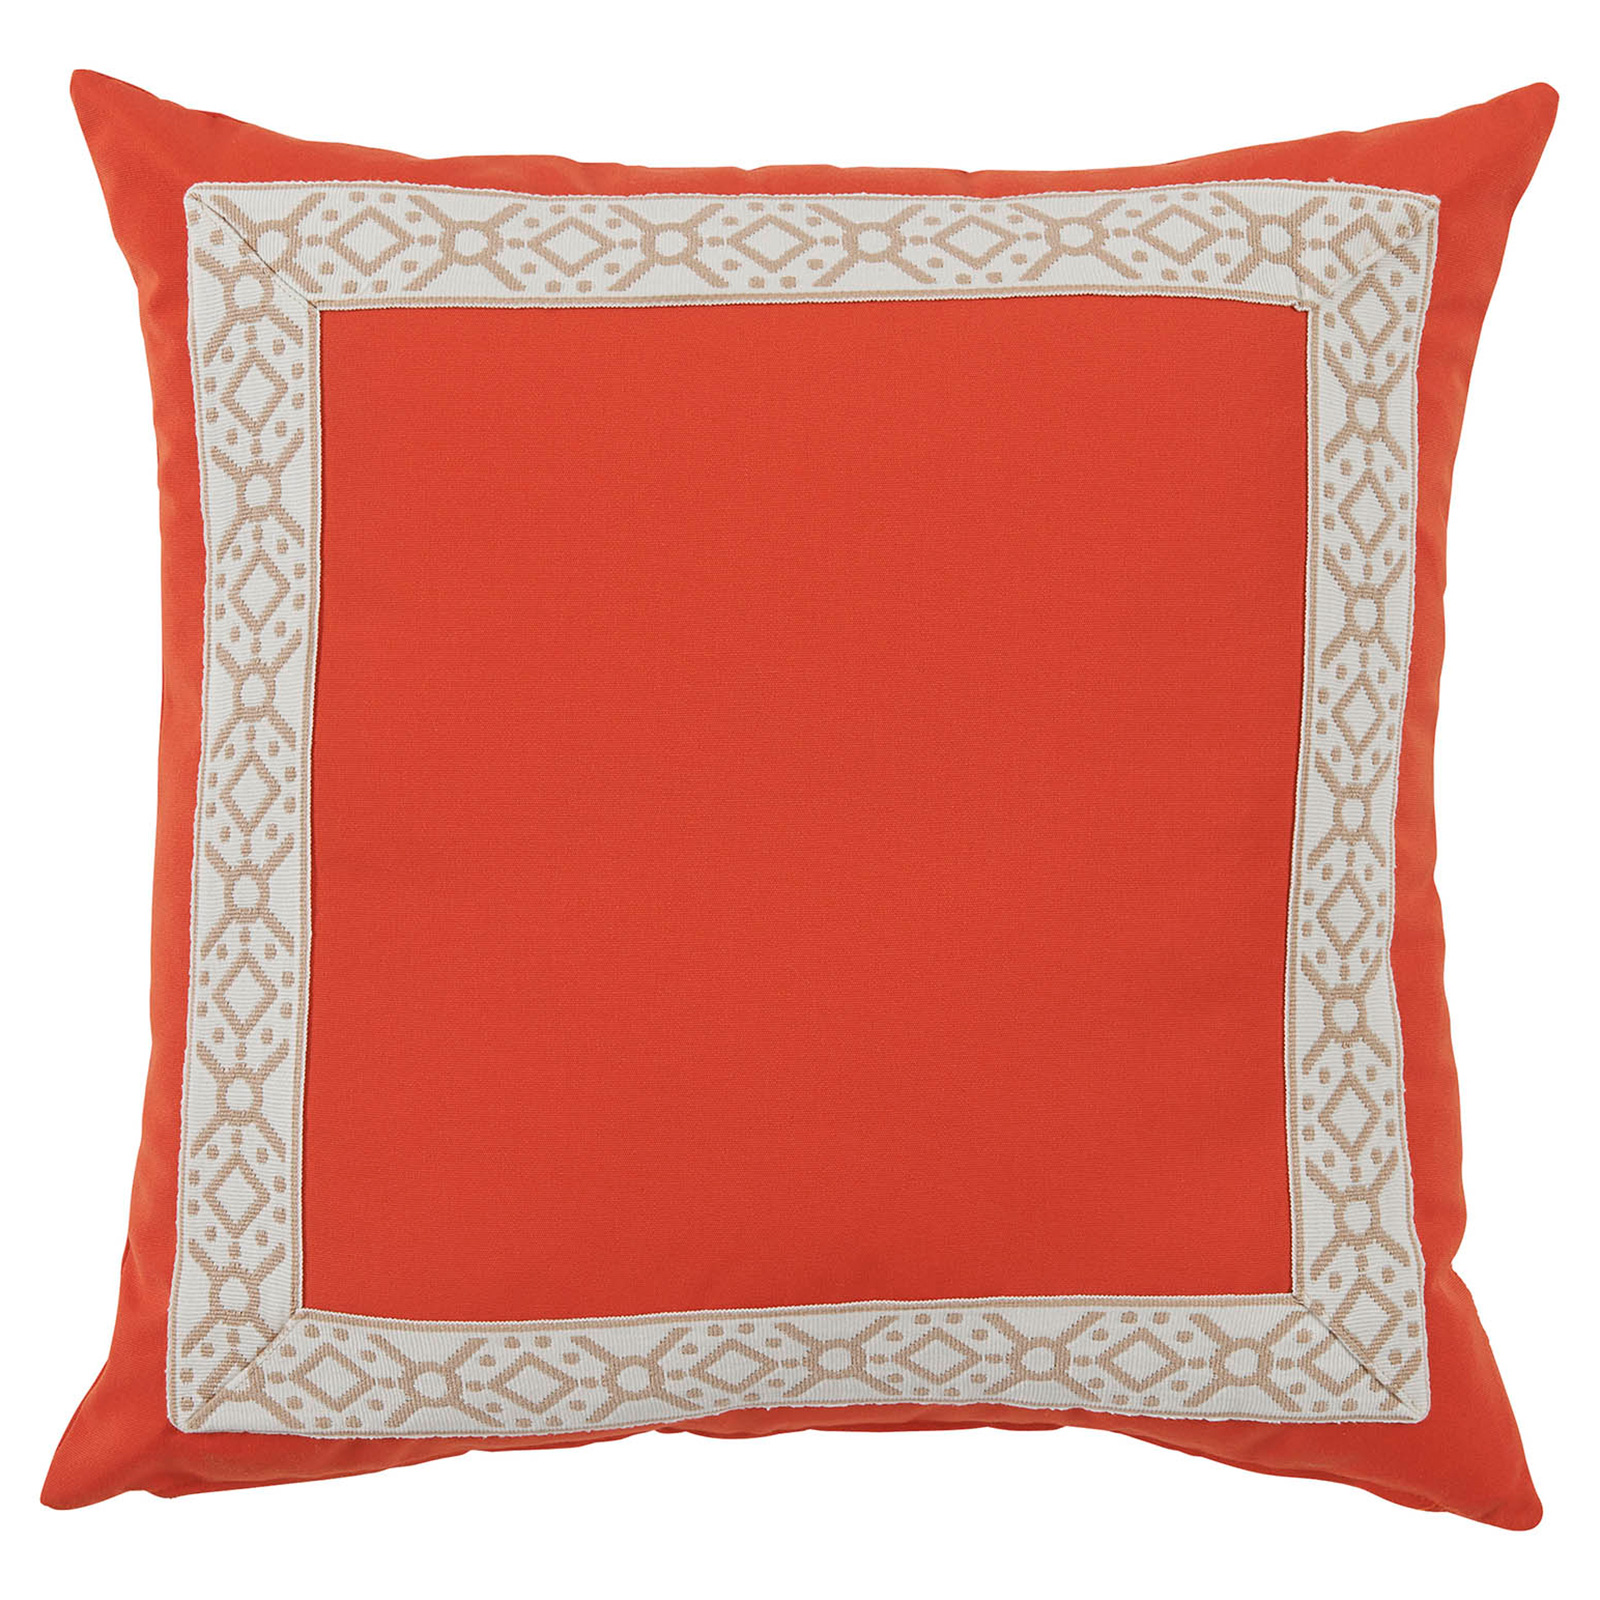 Perri Modern Global Trim Melon Outdoor Pillow - 22x22